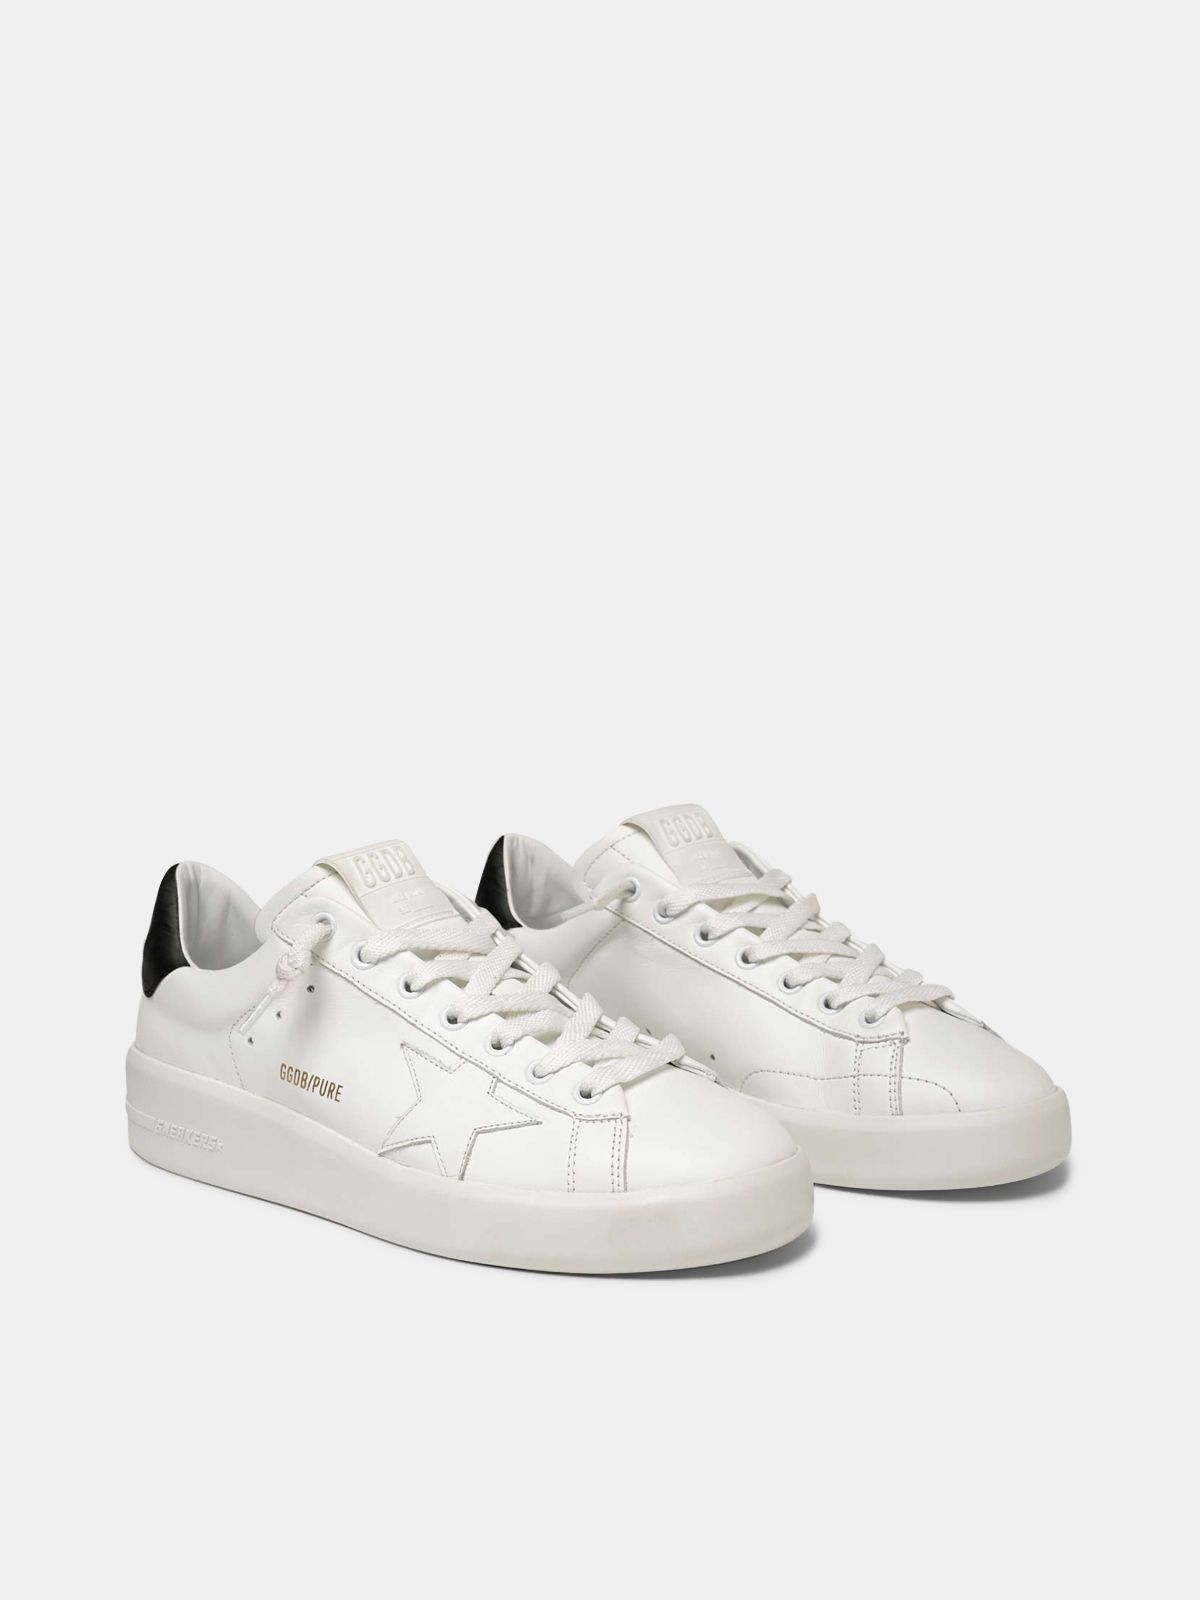 Golden Goose - PURESTAR sneakers with black heel tab in